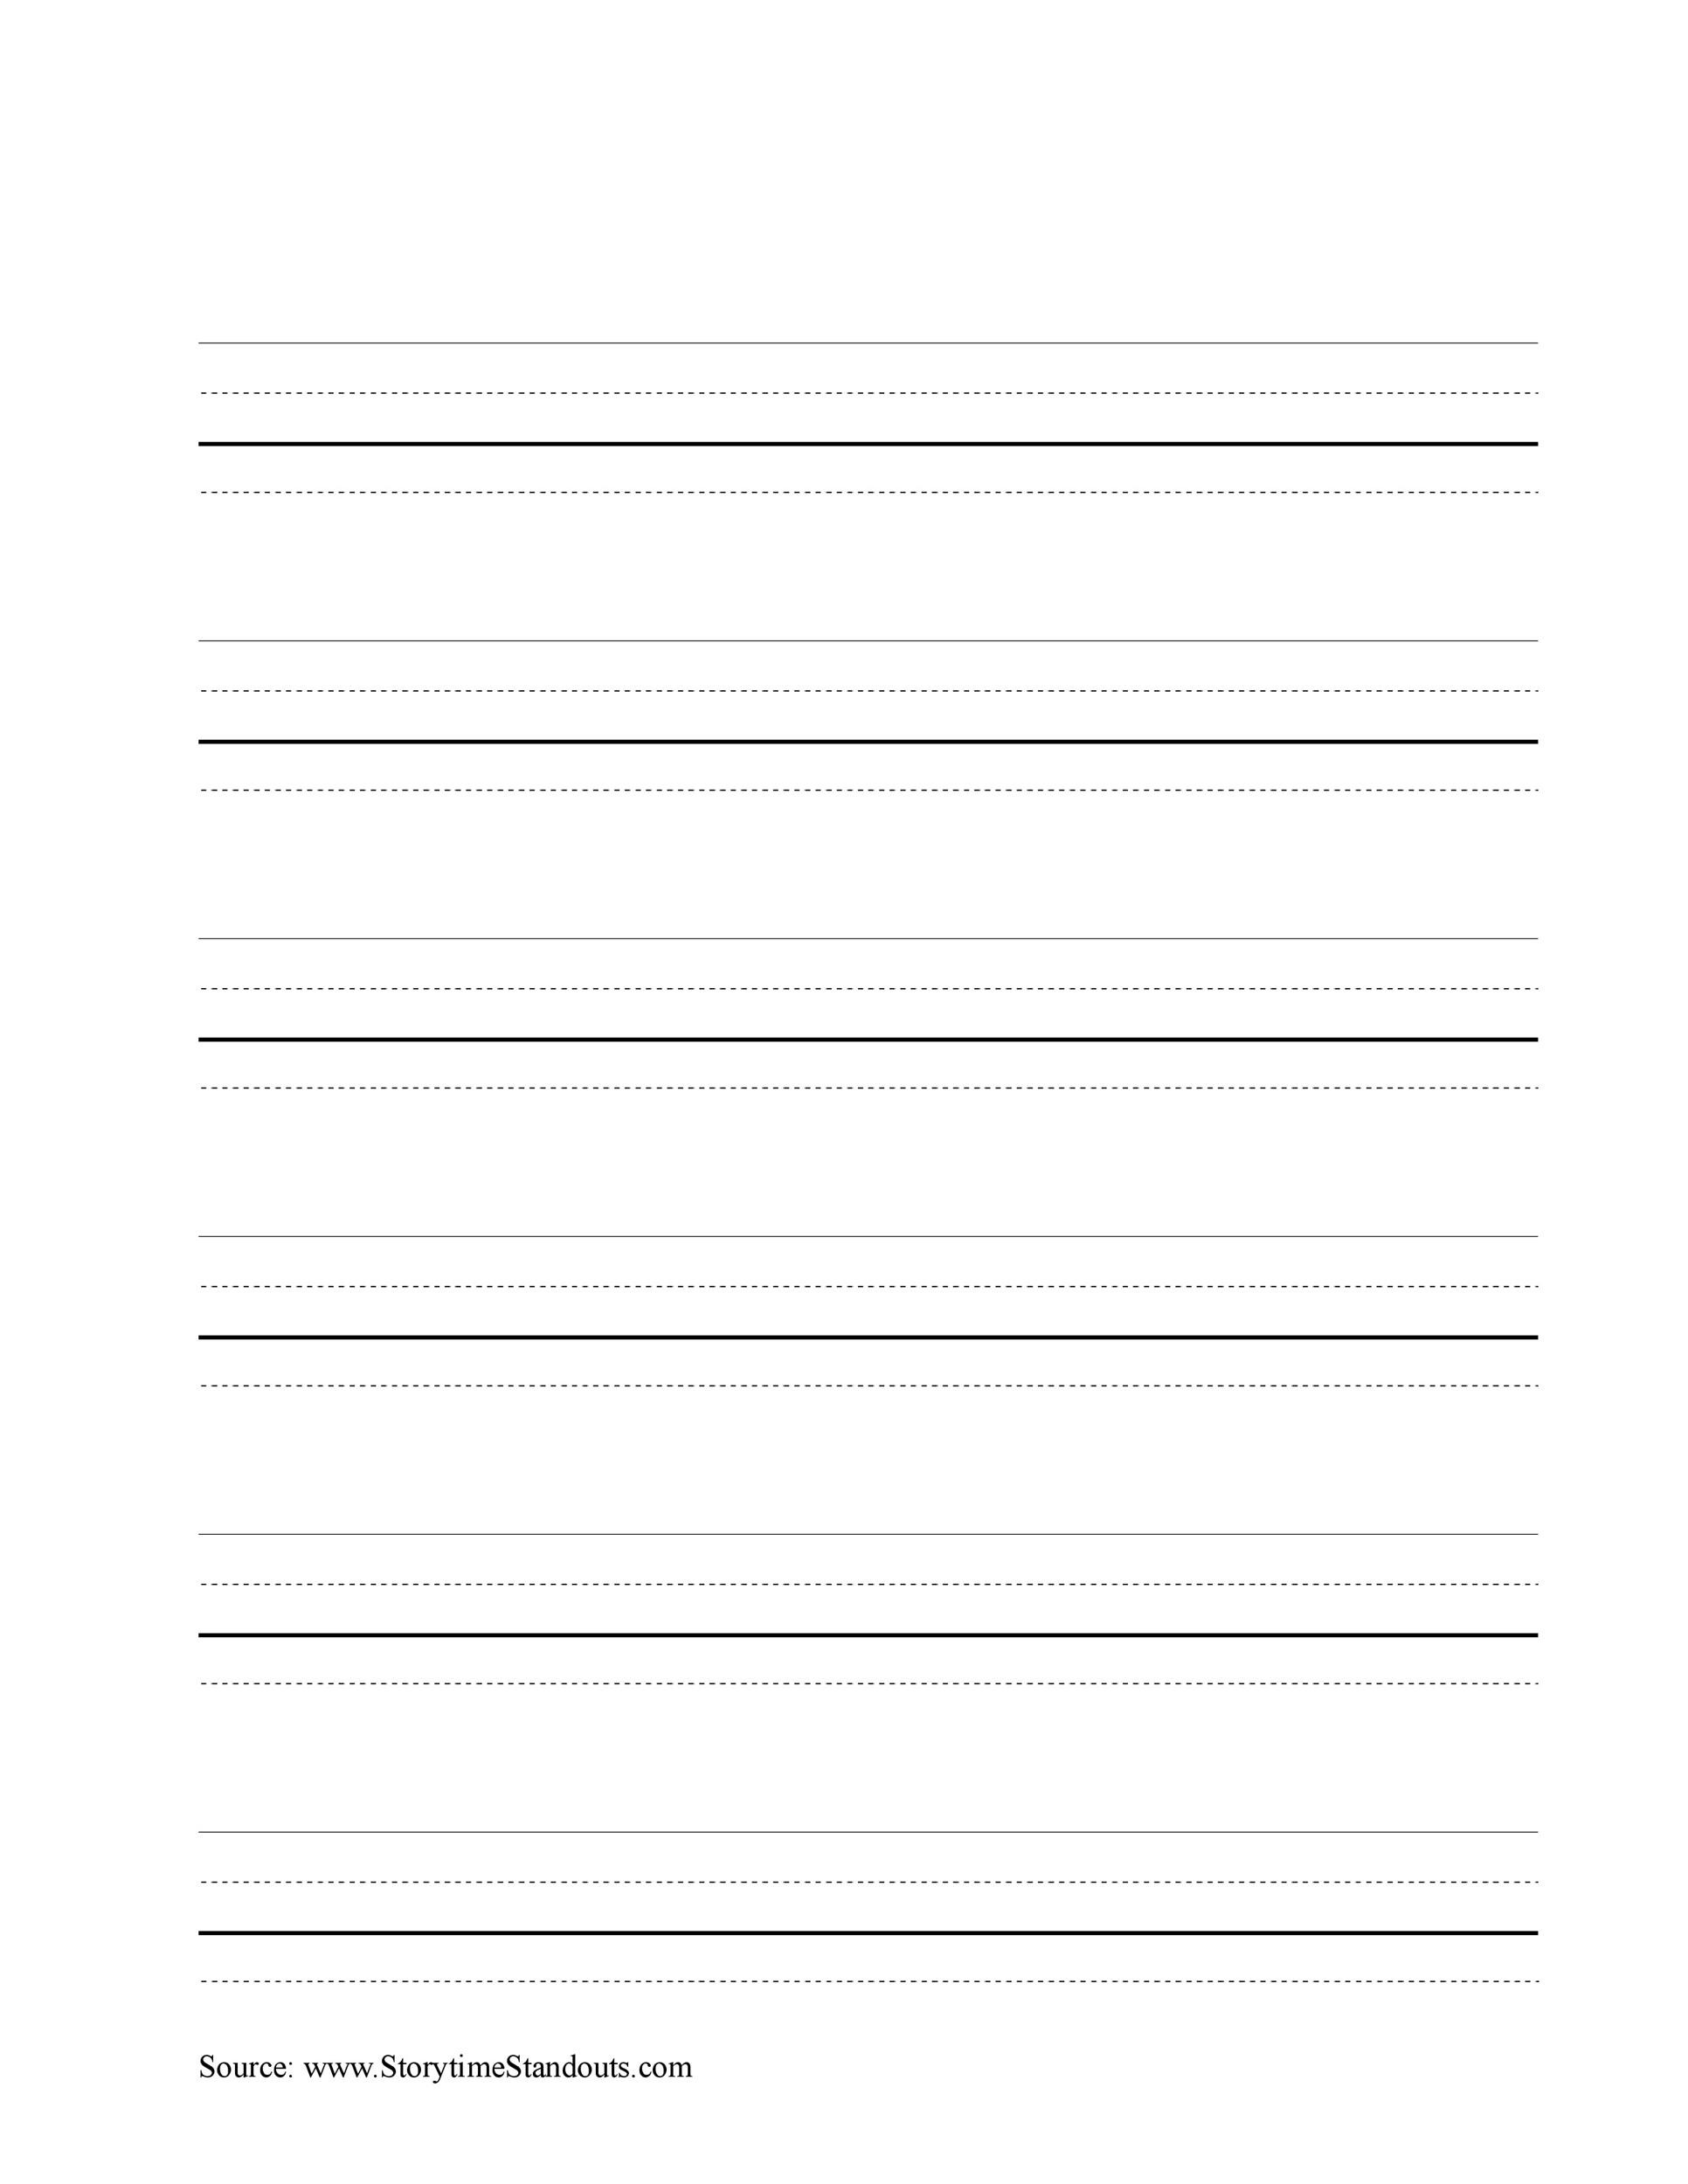 Free lined paper template 25